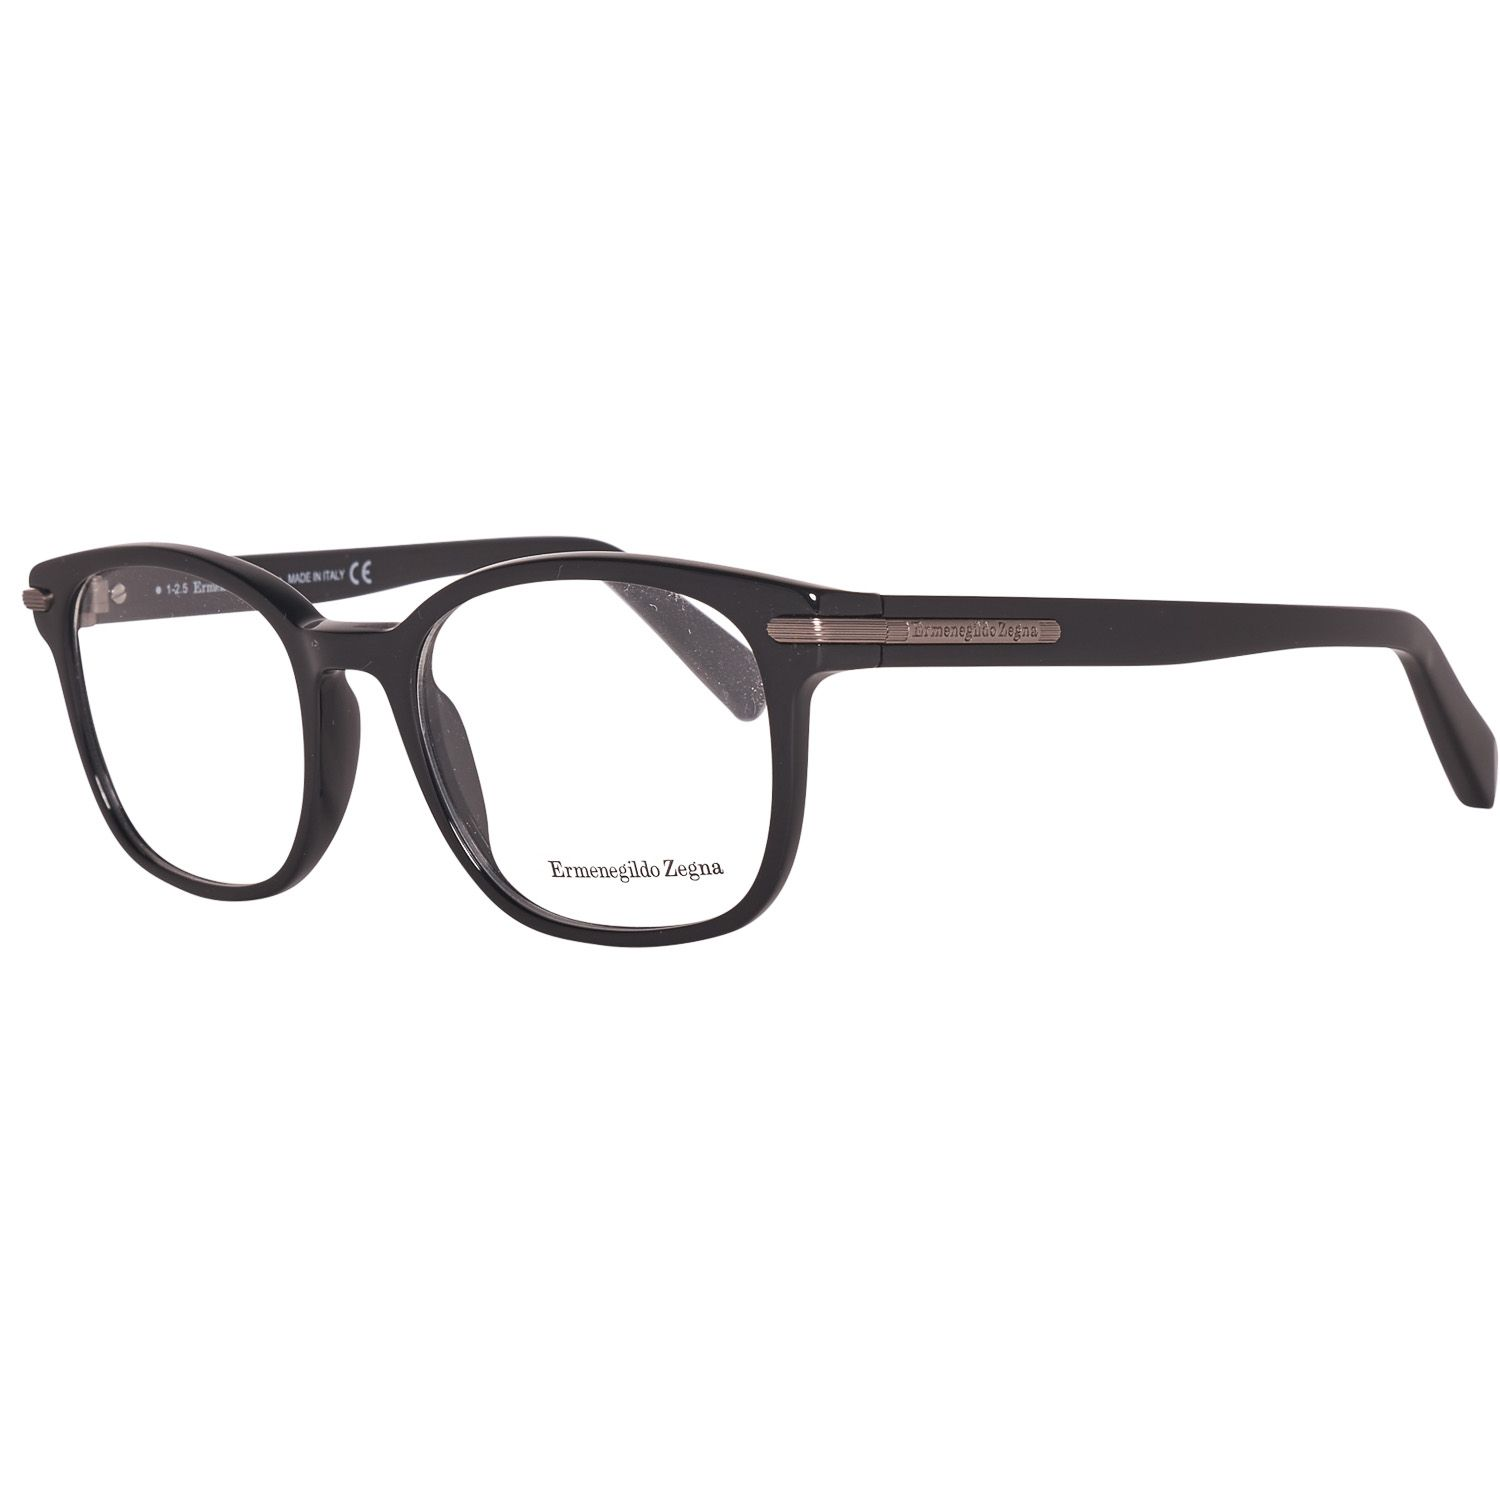 Ermenegildo Zegna Optical Frame EZ5032 001 51 Men Black